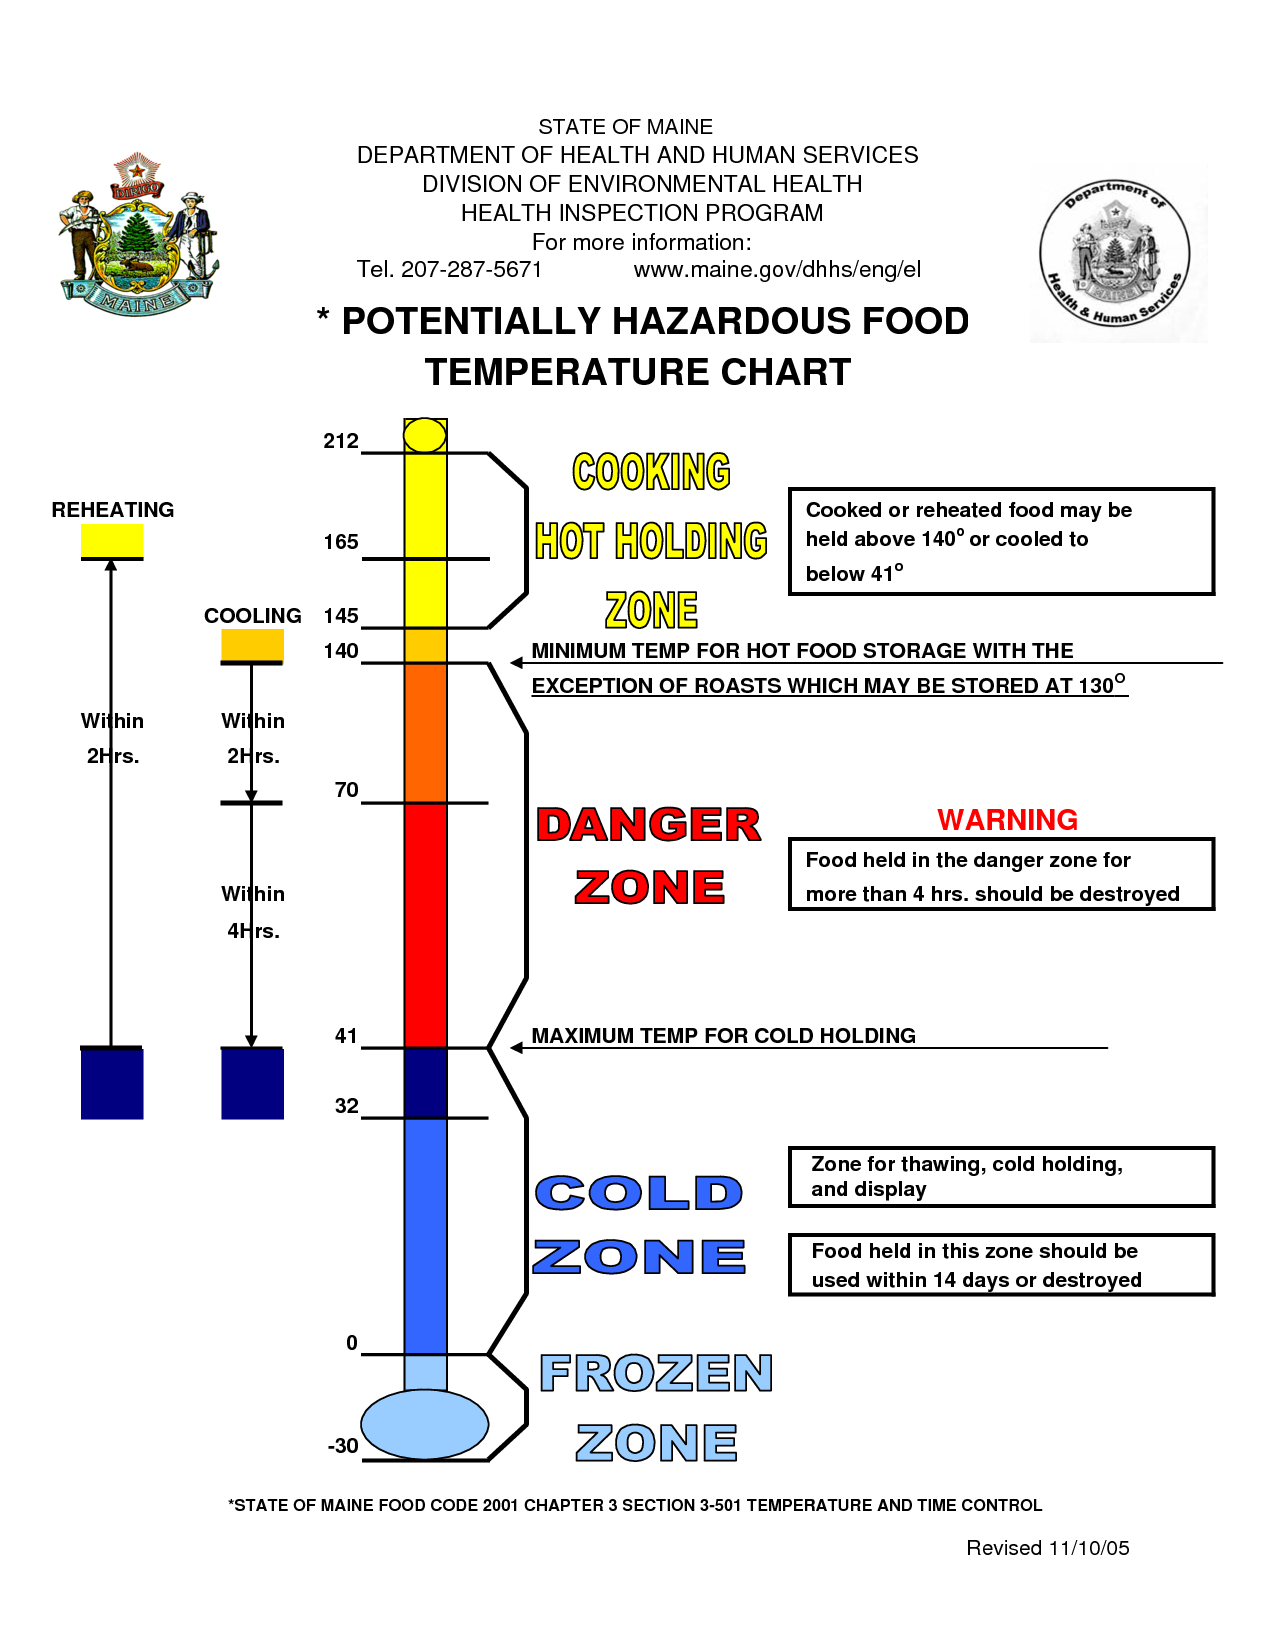 hight resolution of temperature chart template potentially hazardous food temperature humidity diagram food temperature diagram